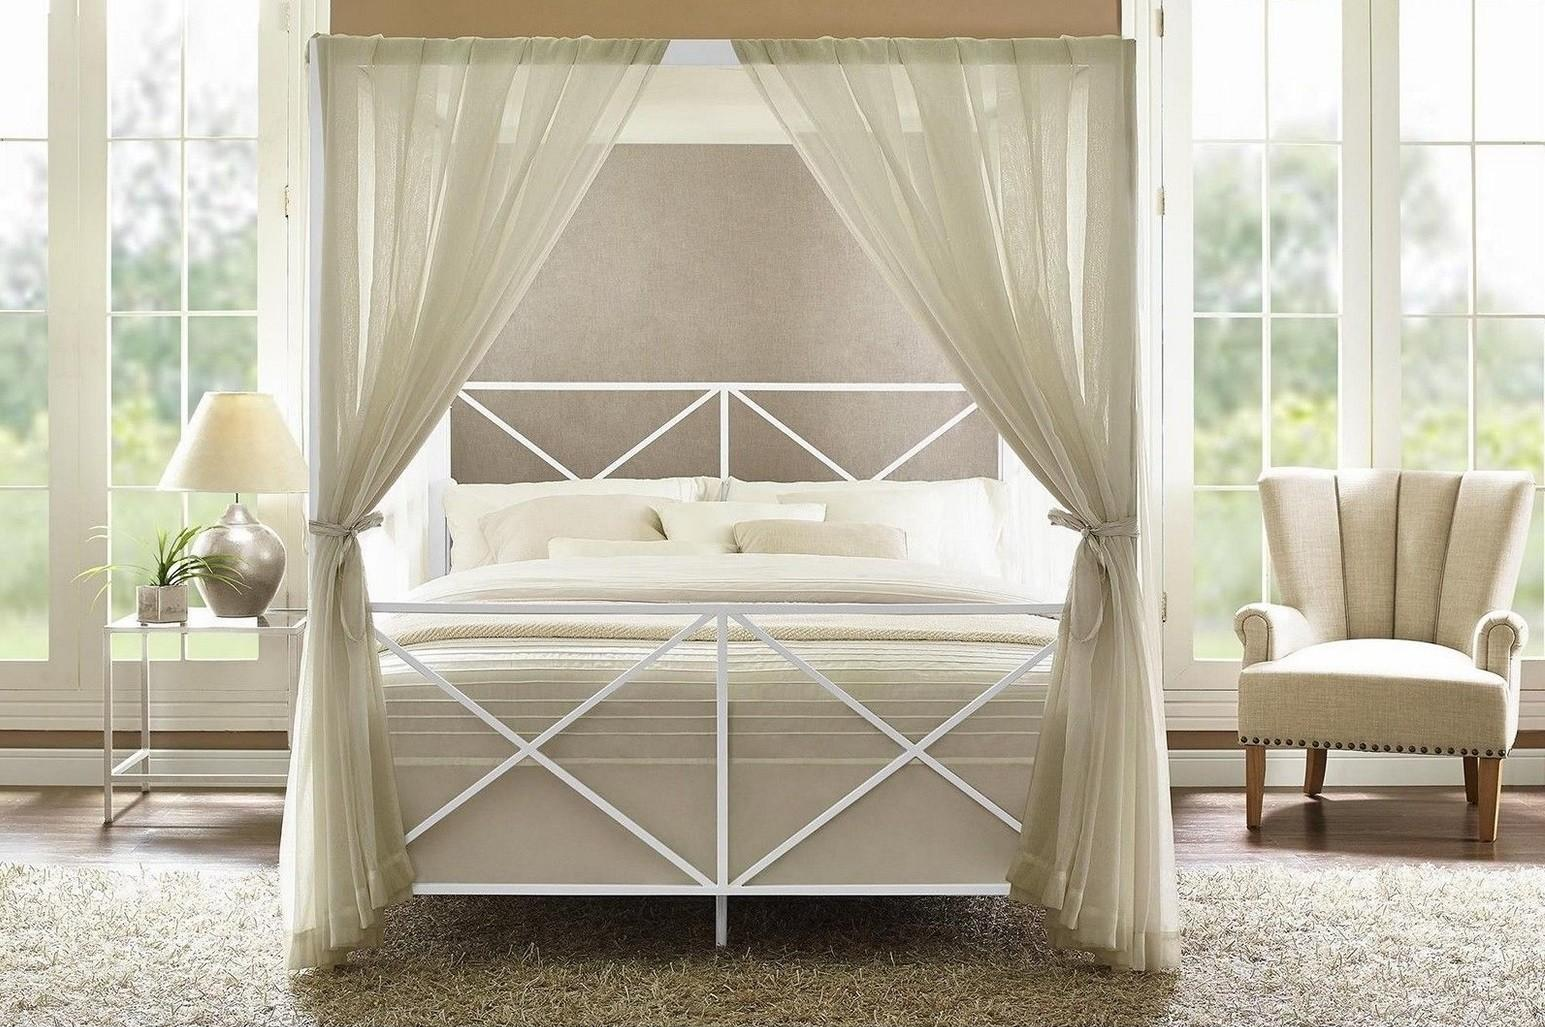 Canopy Bed Ideas Fabulous Outdoor Beds